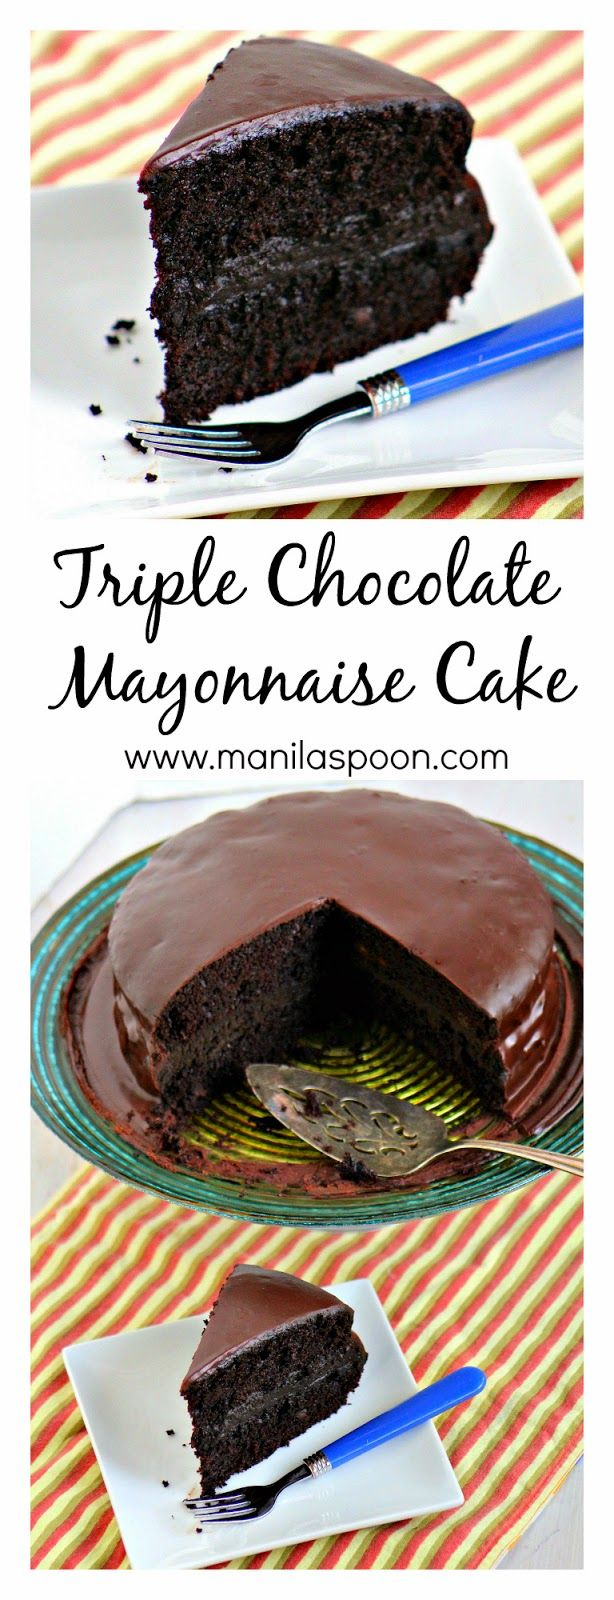 The secret ingredient that makes this cake so moist is Mayonnaise! Add 3 kinds of chocolate and it's chocolate indulgence at its highest. Triple Chocolate Mayonnaise Cake | manilaspoon.com